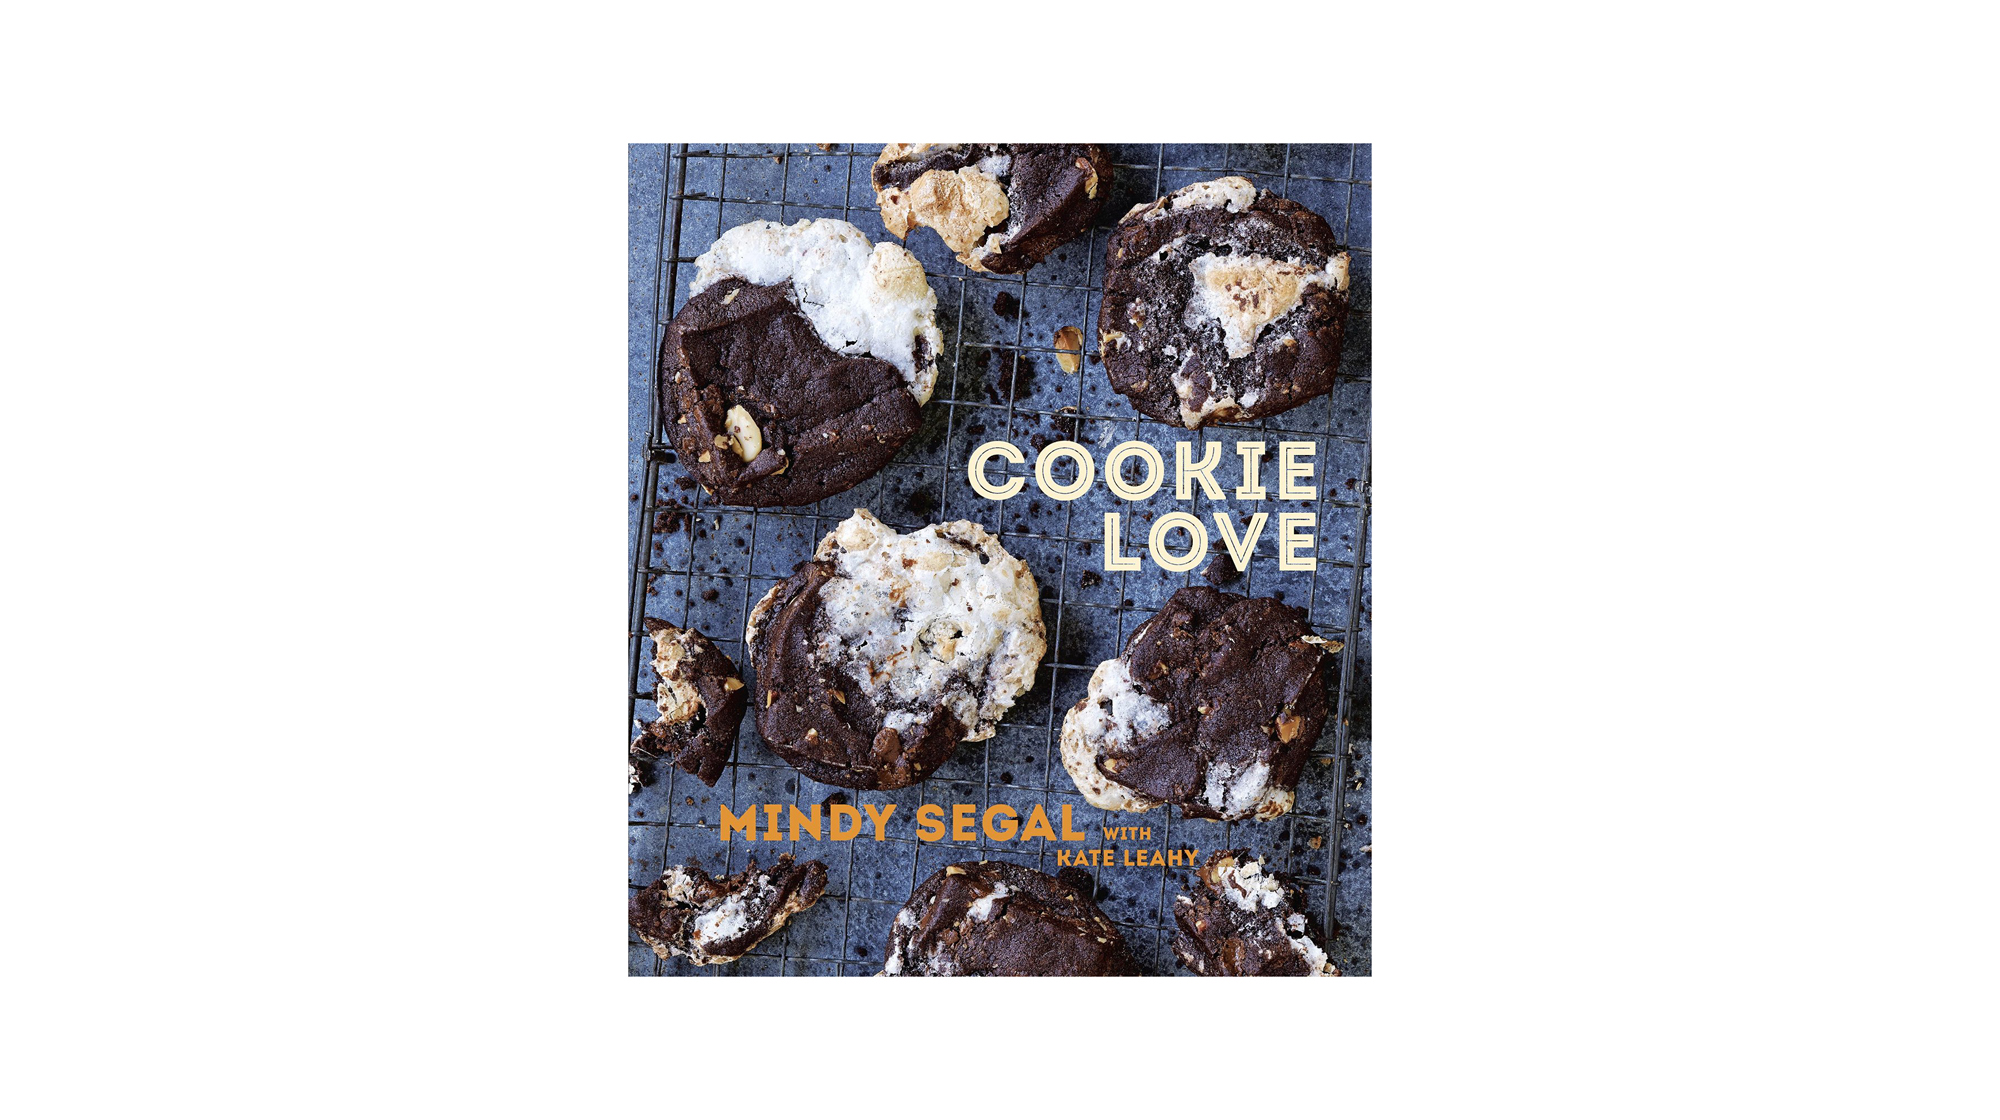 Cookie Love, by Kate Leahy and Mindy Segal